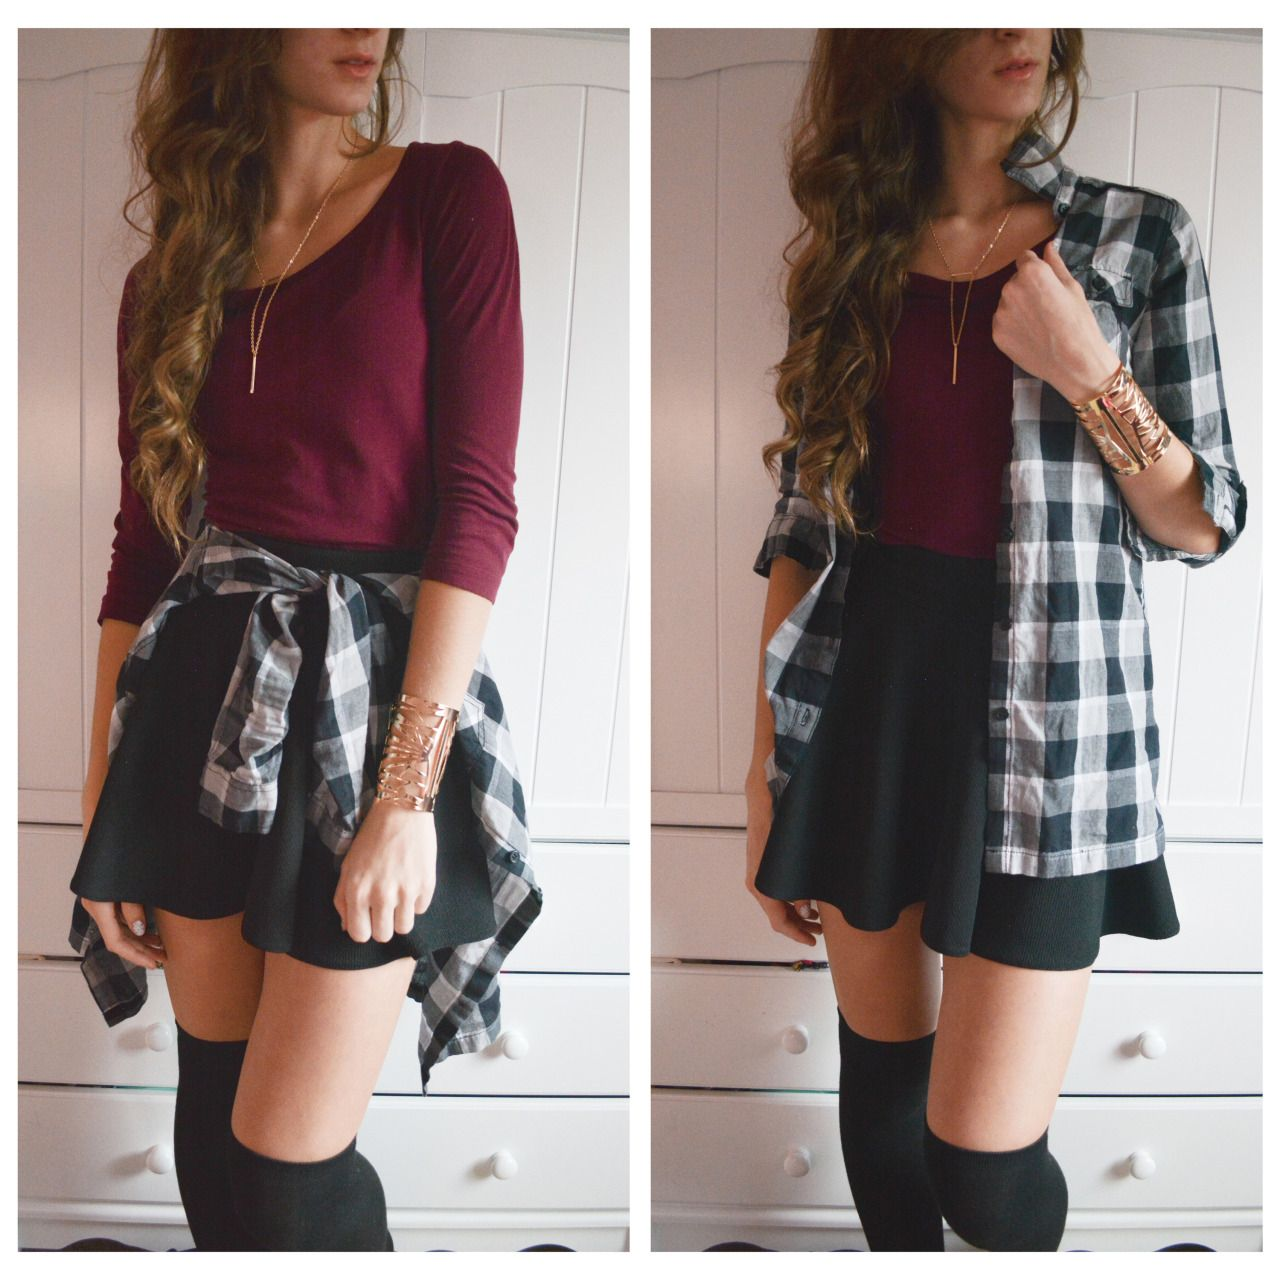 Cliche and simple? Yeah. Comfy and cute? Yeah. An outfit I'd like to try ( plus it has flannel, I'm a little obsessed with it ) •.)